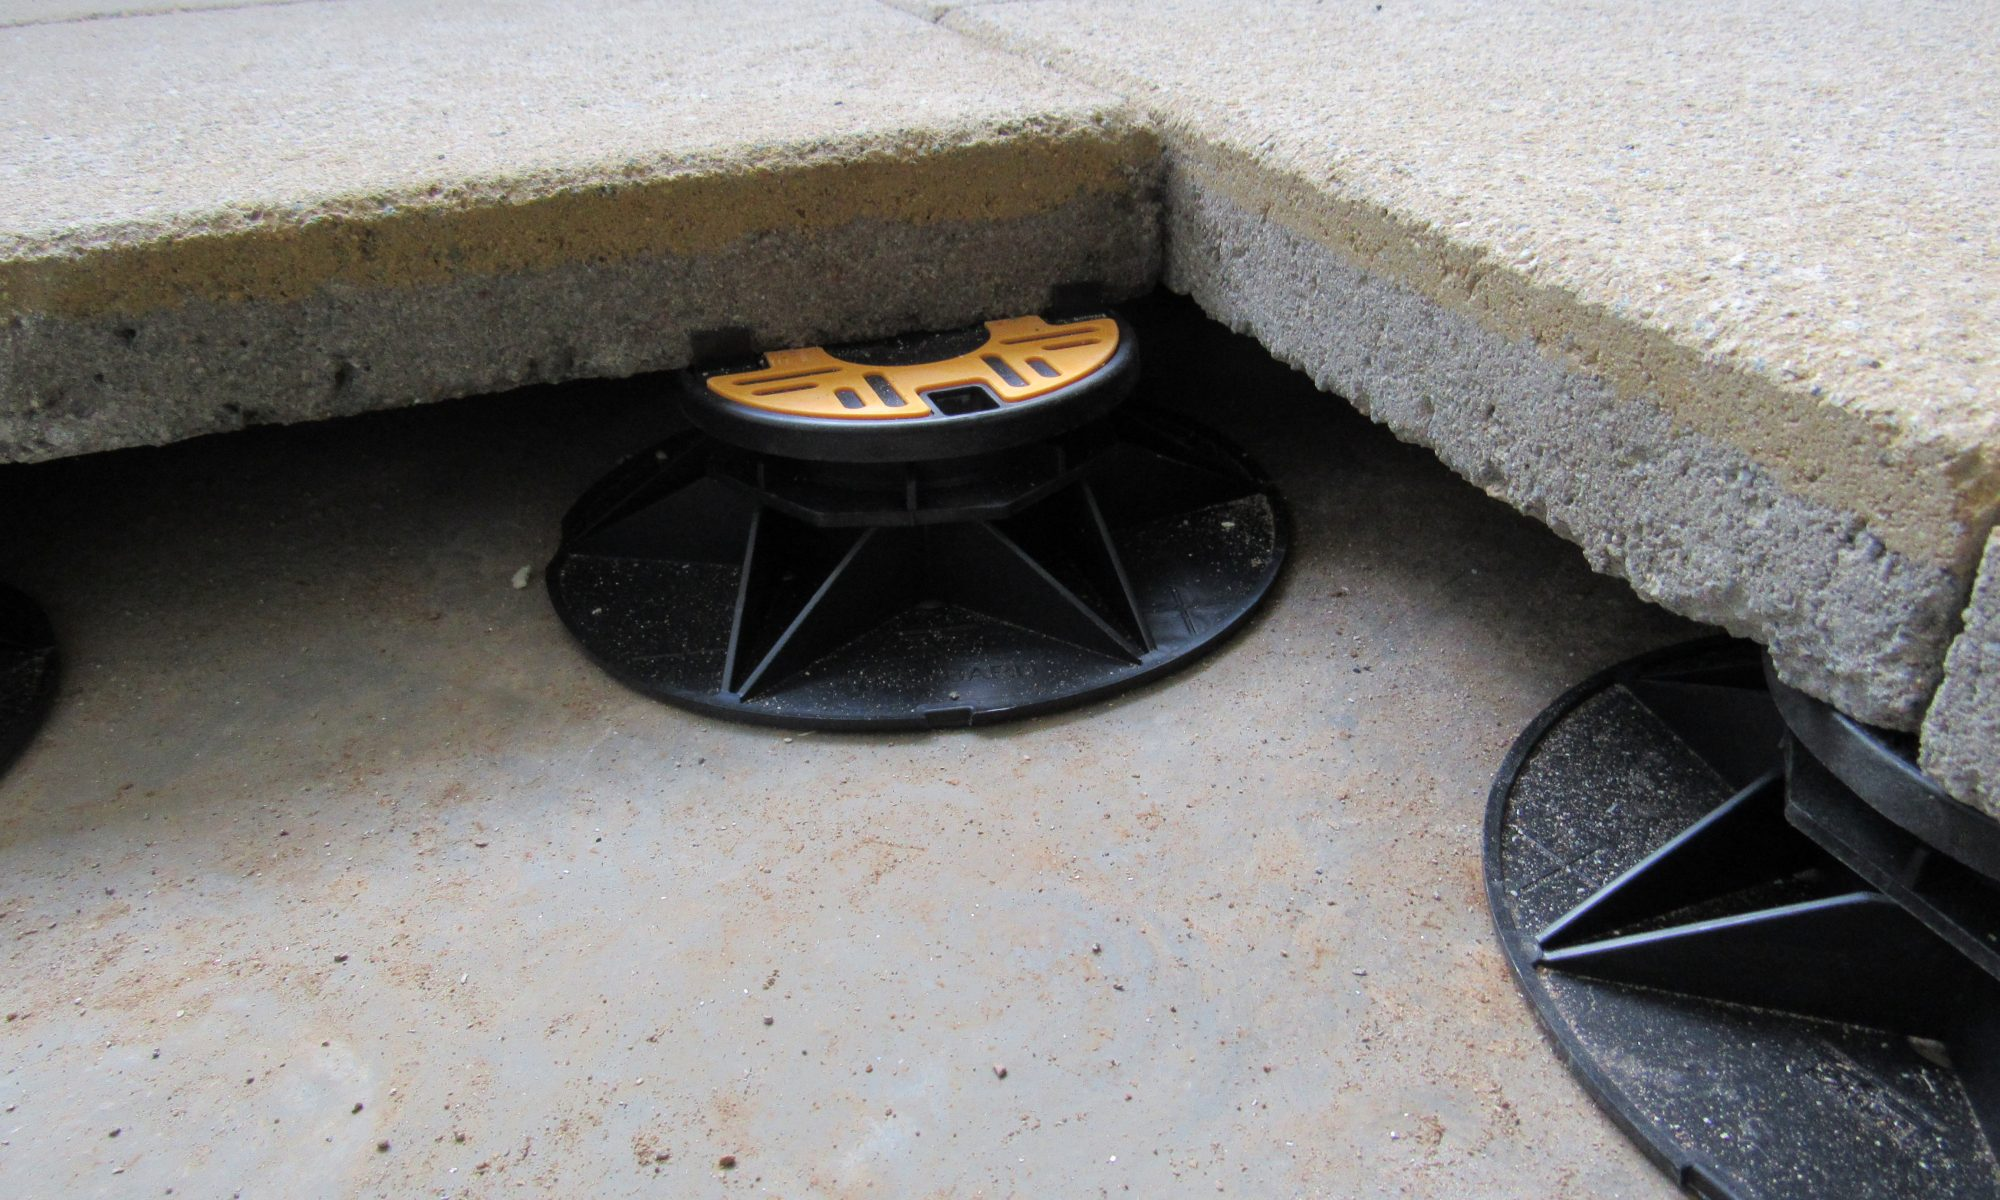 Universal pedestals for paving and decking - supporting paving slab underside 2